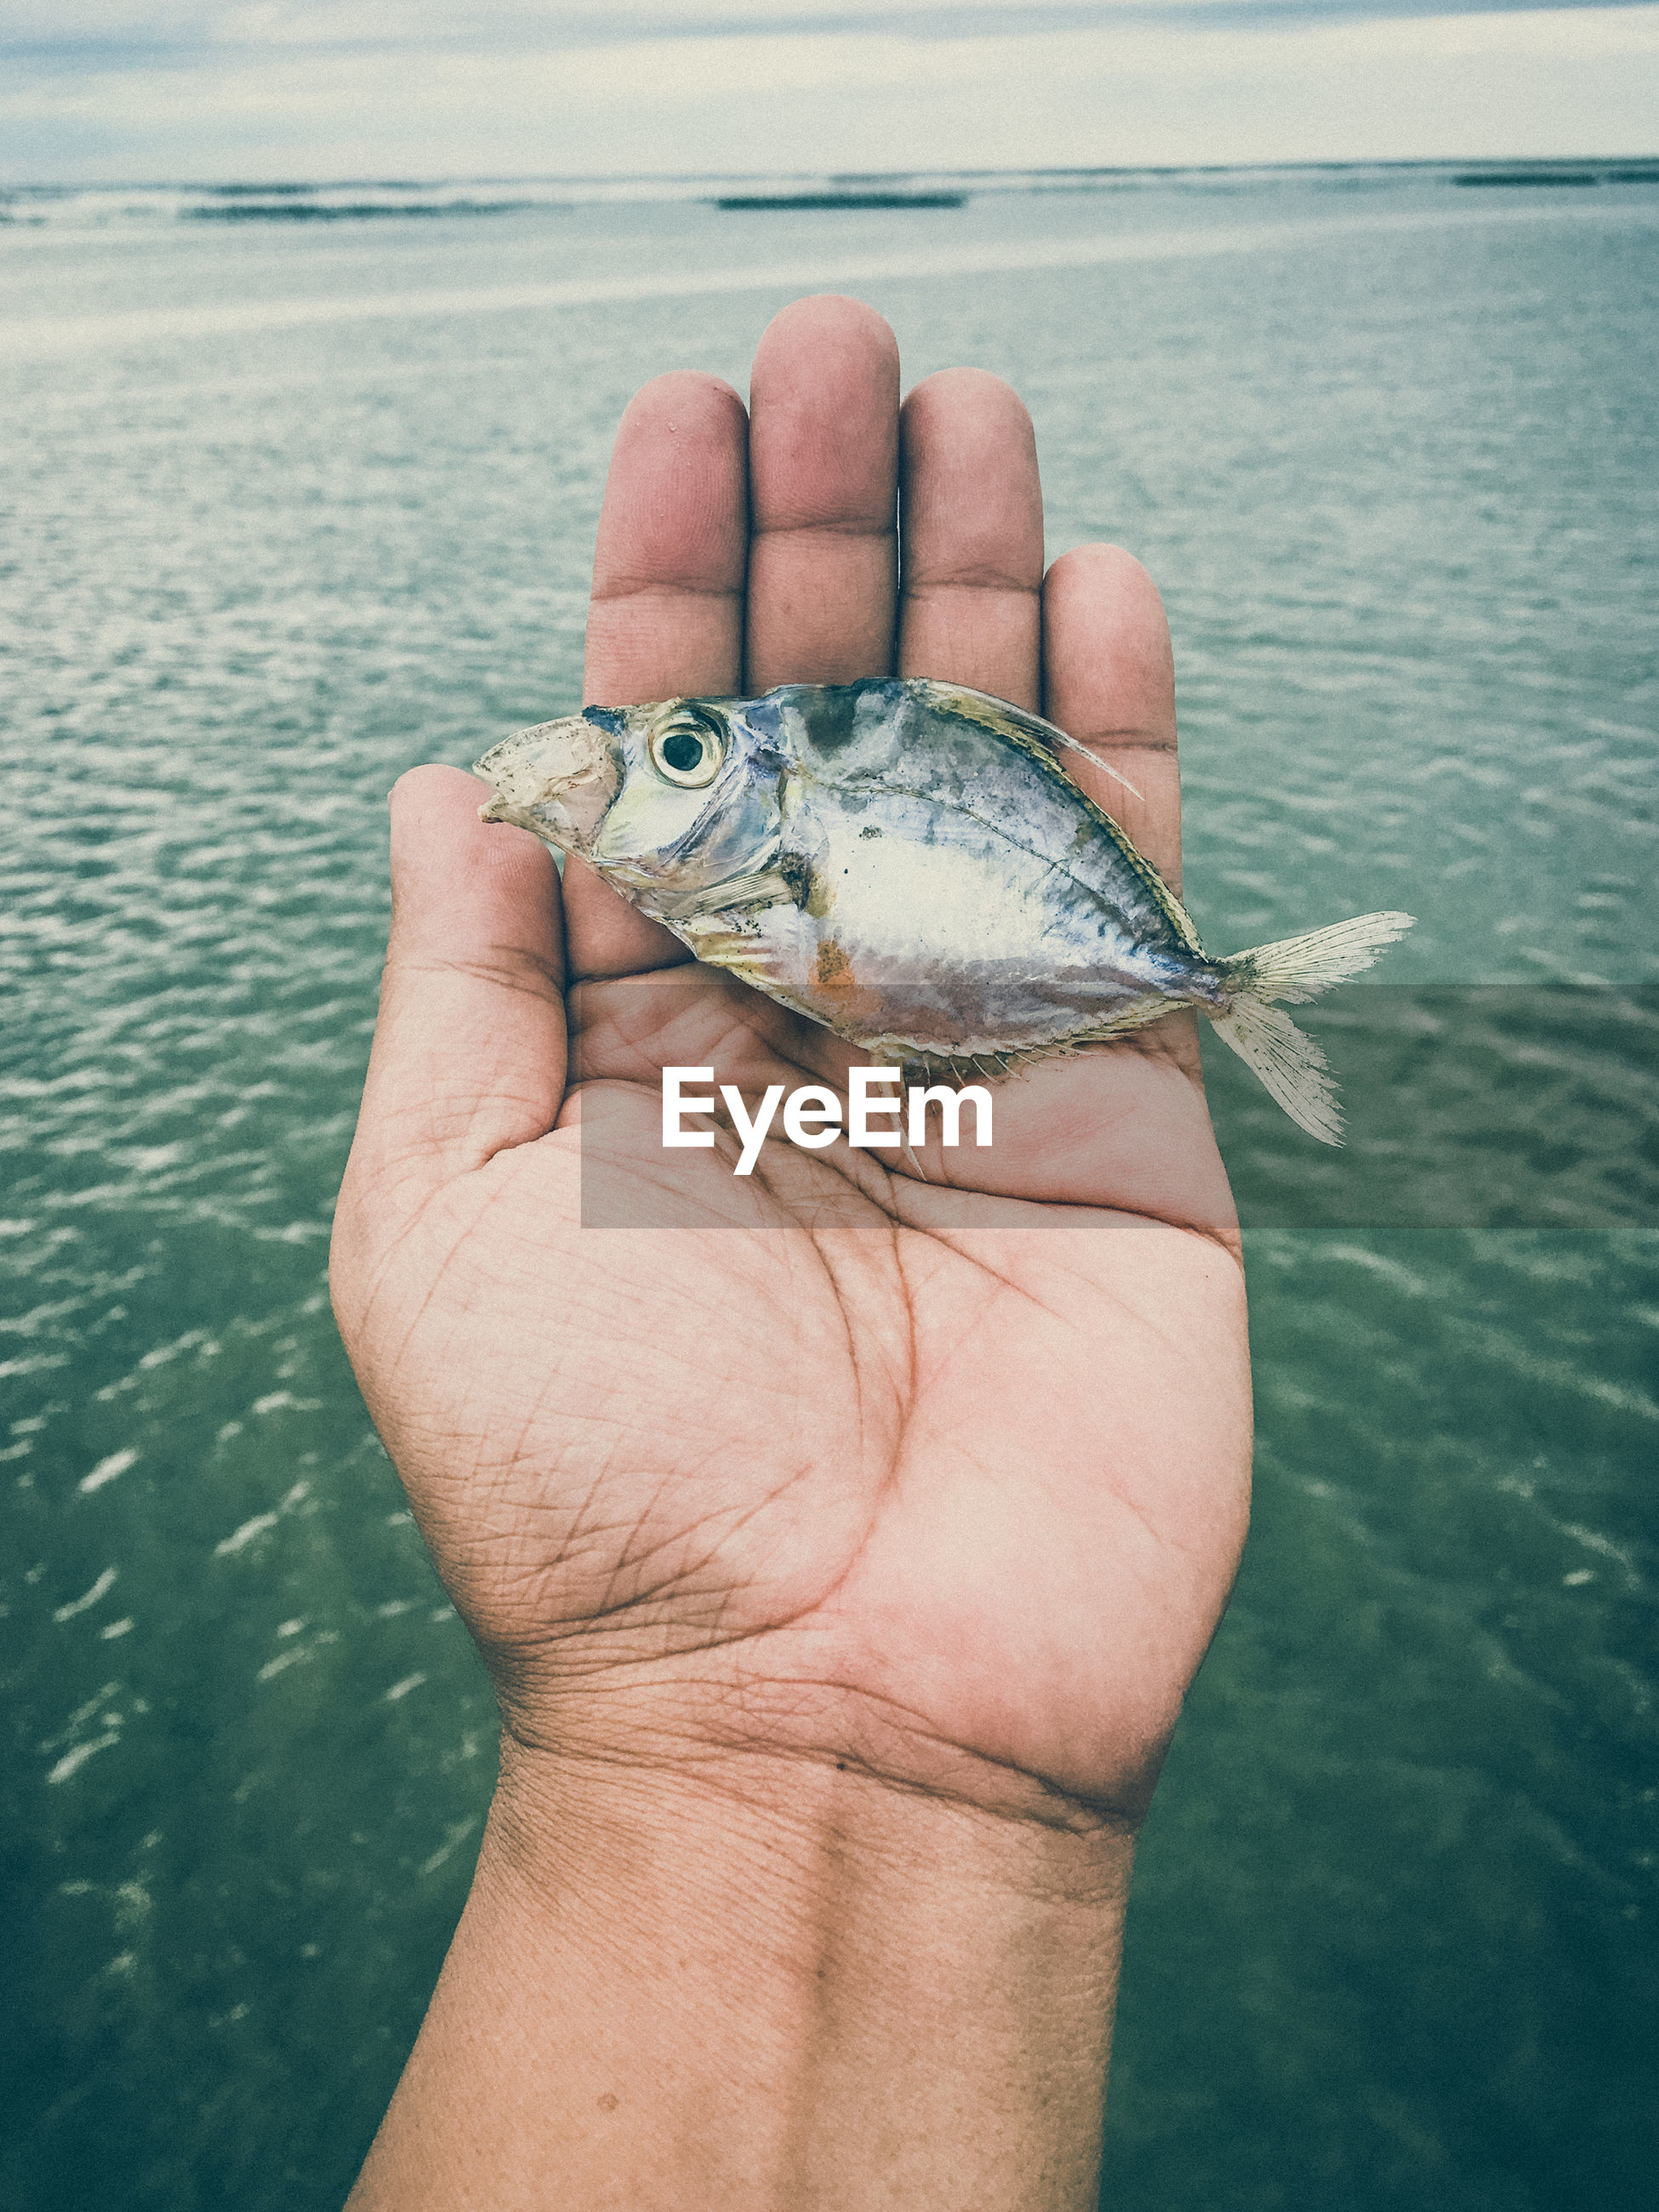 Close-up of hand holding fish in lake